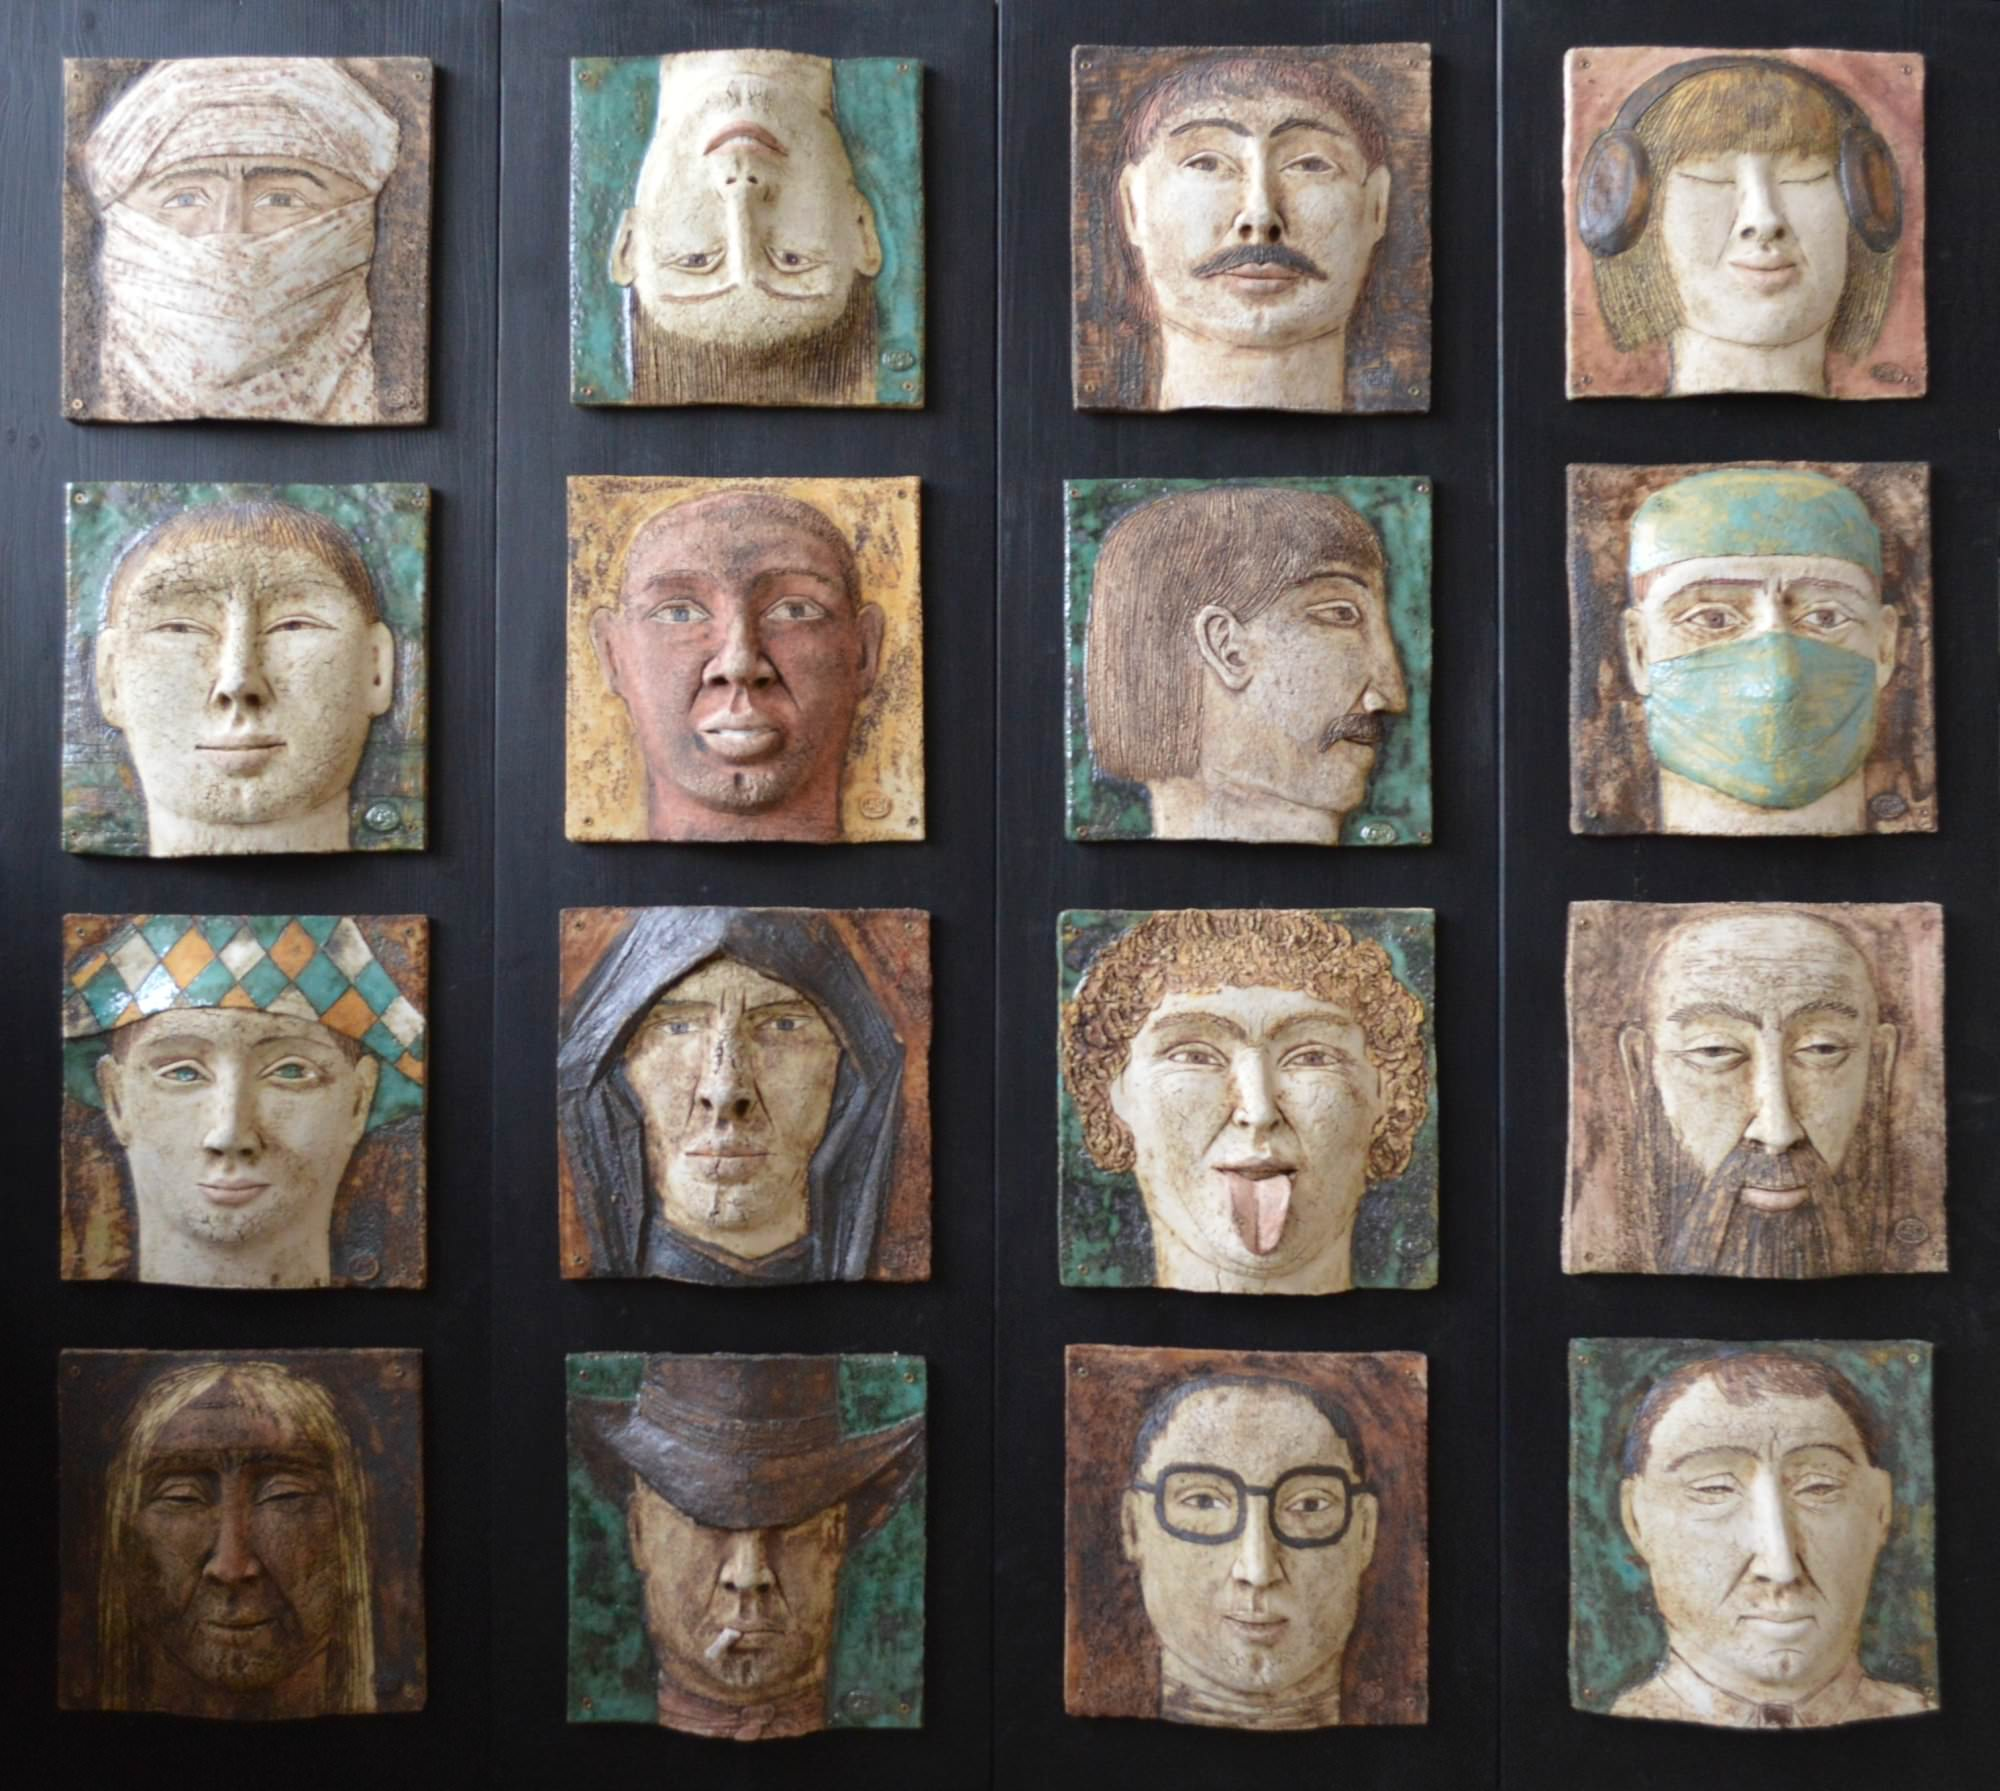 on-board - 9.Looking-for-the-man.-chamotte-oxidesglazespanno-ceramic-decorated-on-the-wood-board.-110x120-2013.